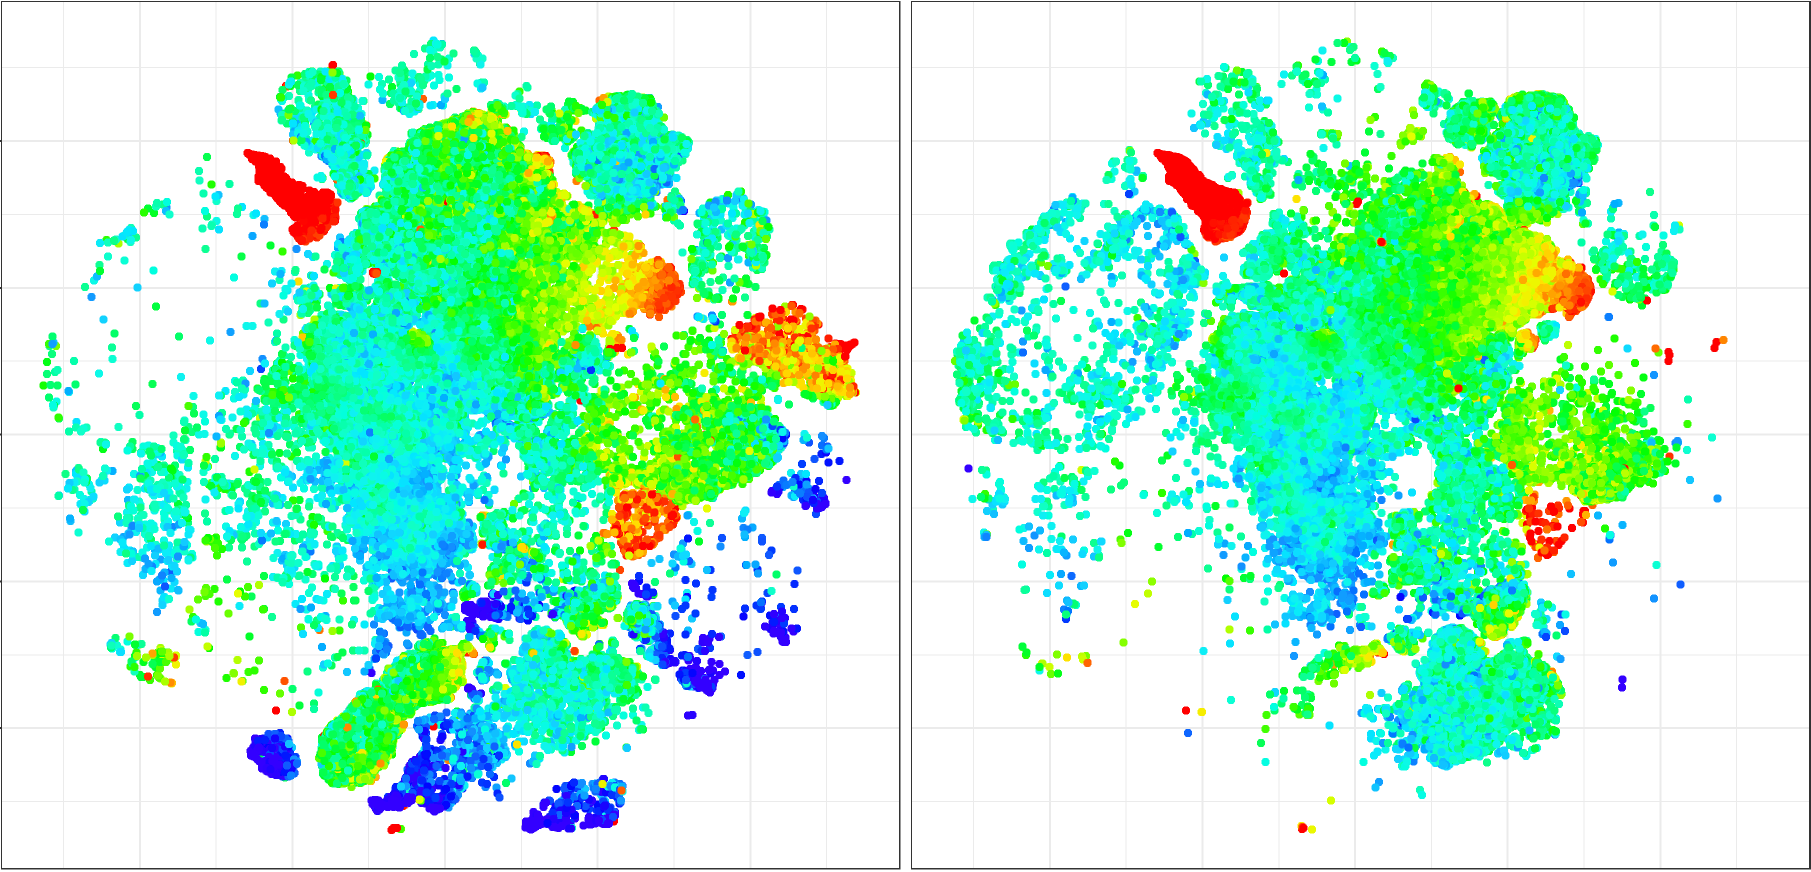 Example of data analysis by clustering